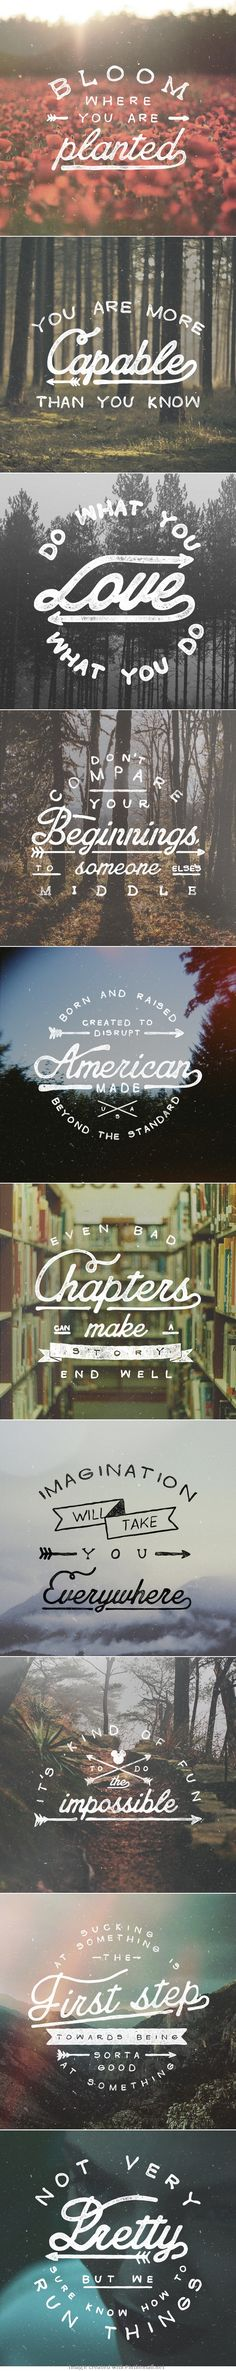 Motivational Hand Lettering // Vintage Retro Grain Photo